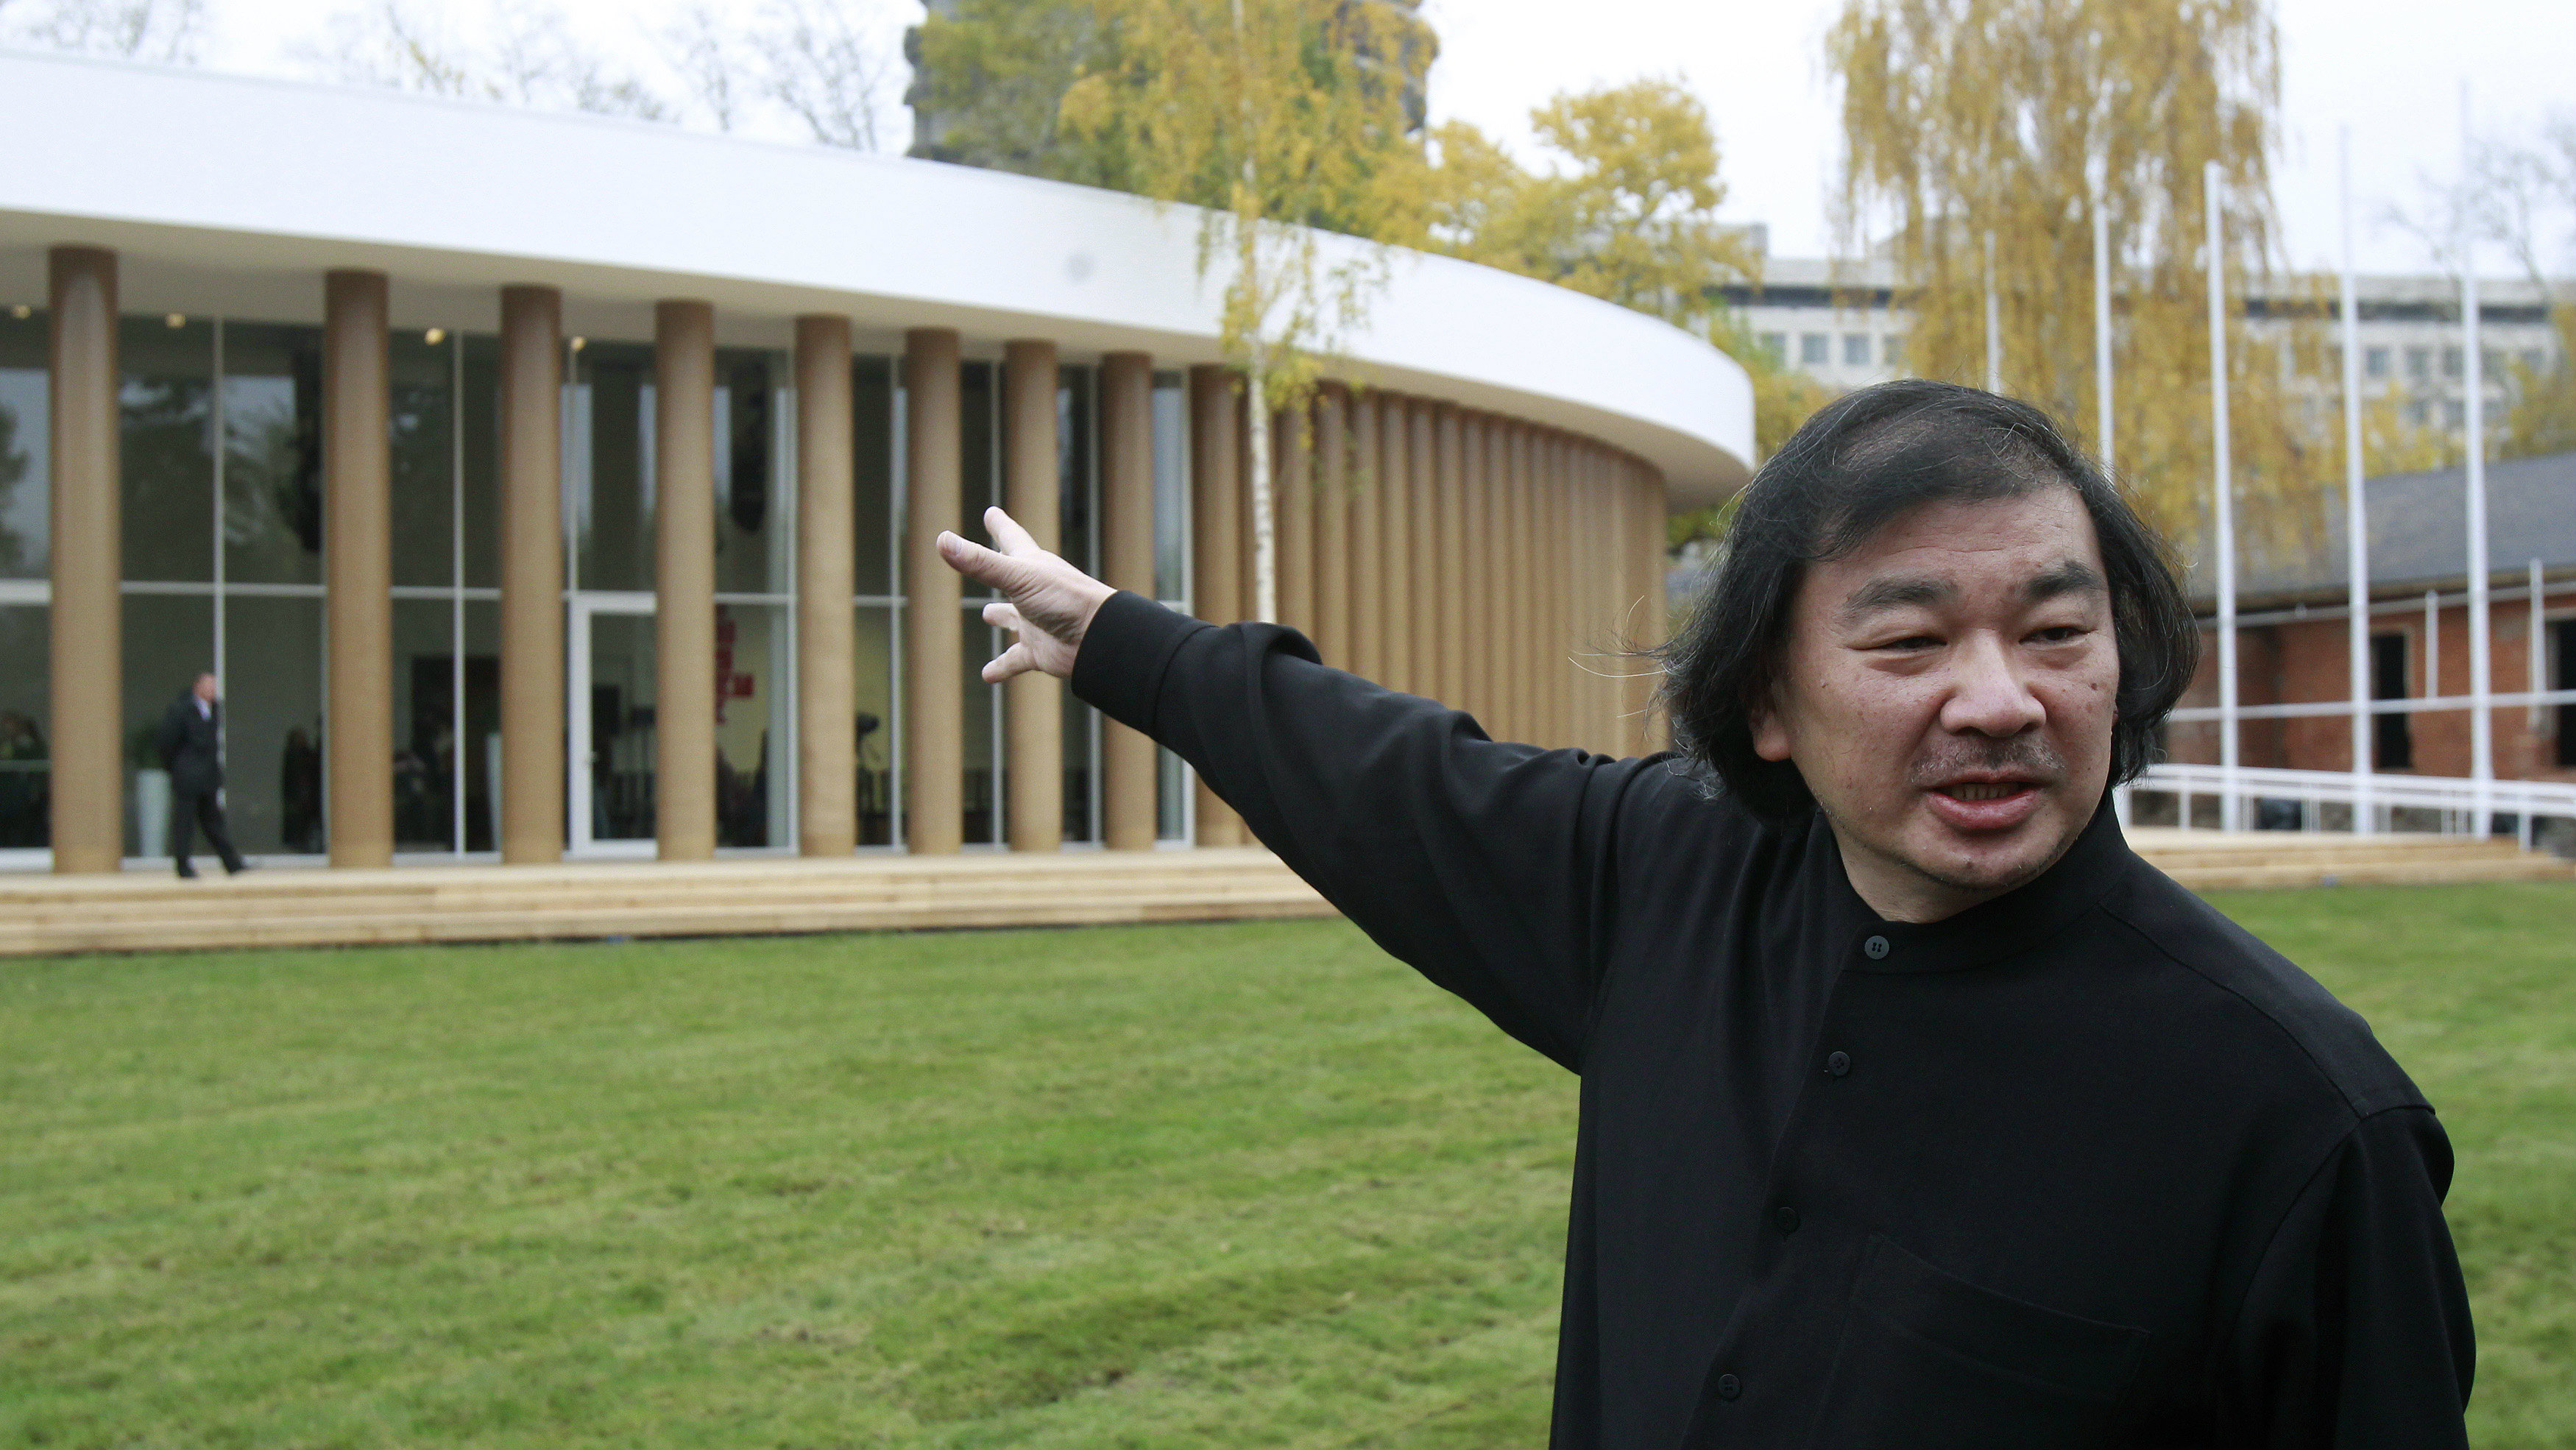 Japanese architect Shigeru Ban points the temporary pavilion he designed for Garage Center Of Contemporary Culture during an opening ceremony at Gorky Park in Moscow, October 19, 2012. REUTERS/Sergei Karpukhin (RUSSIA - Tags: SOCIET